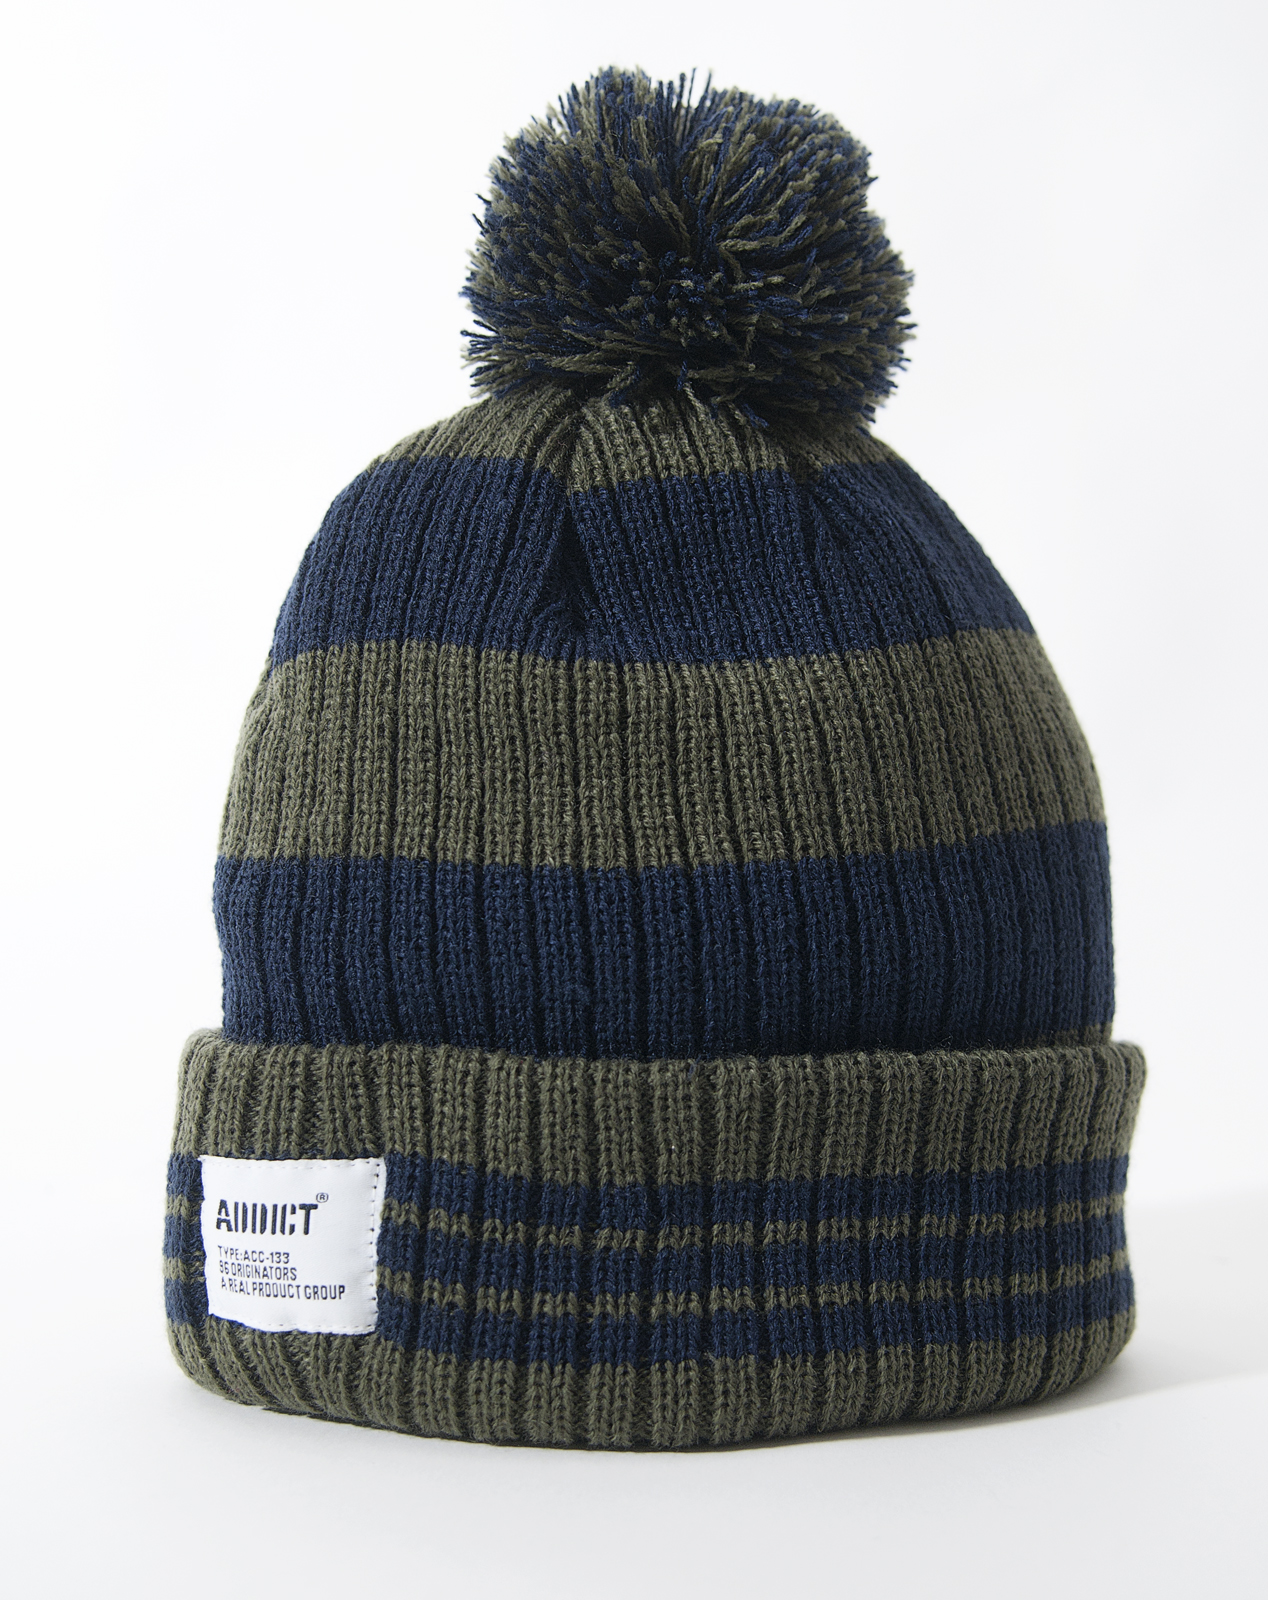 When the colder weather comes around, keep your head warm and looking stylish with Millets range of winter hats & beanies.